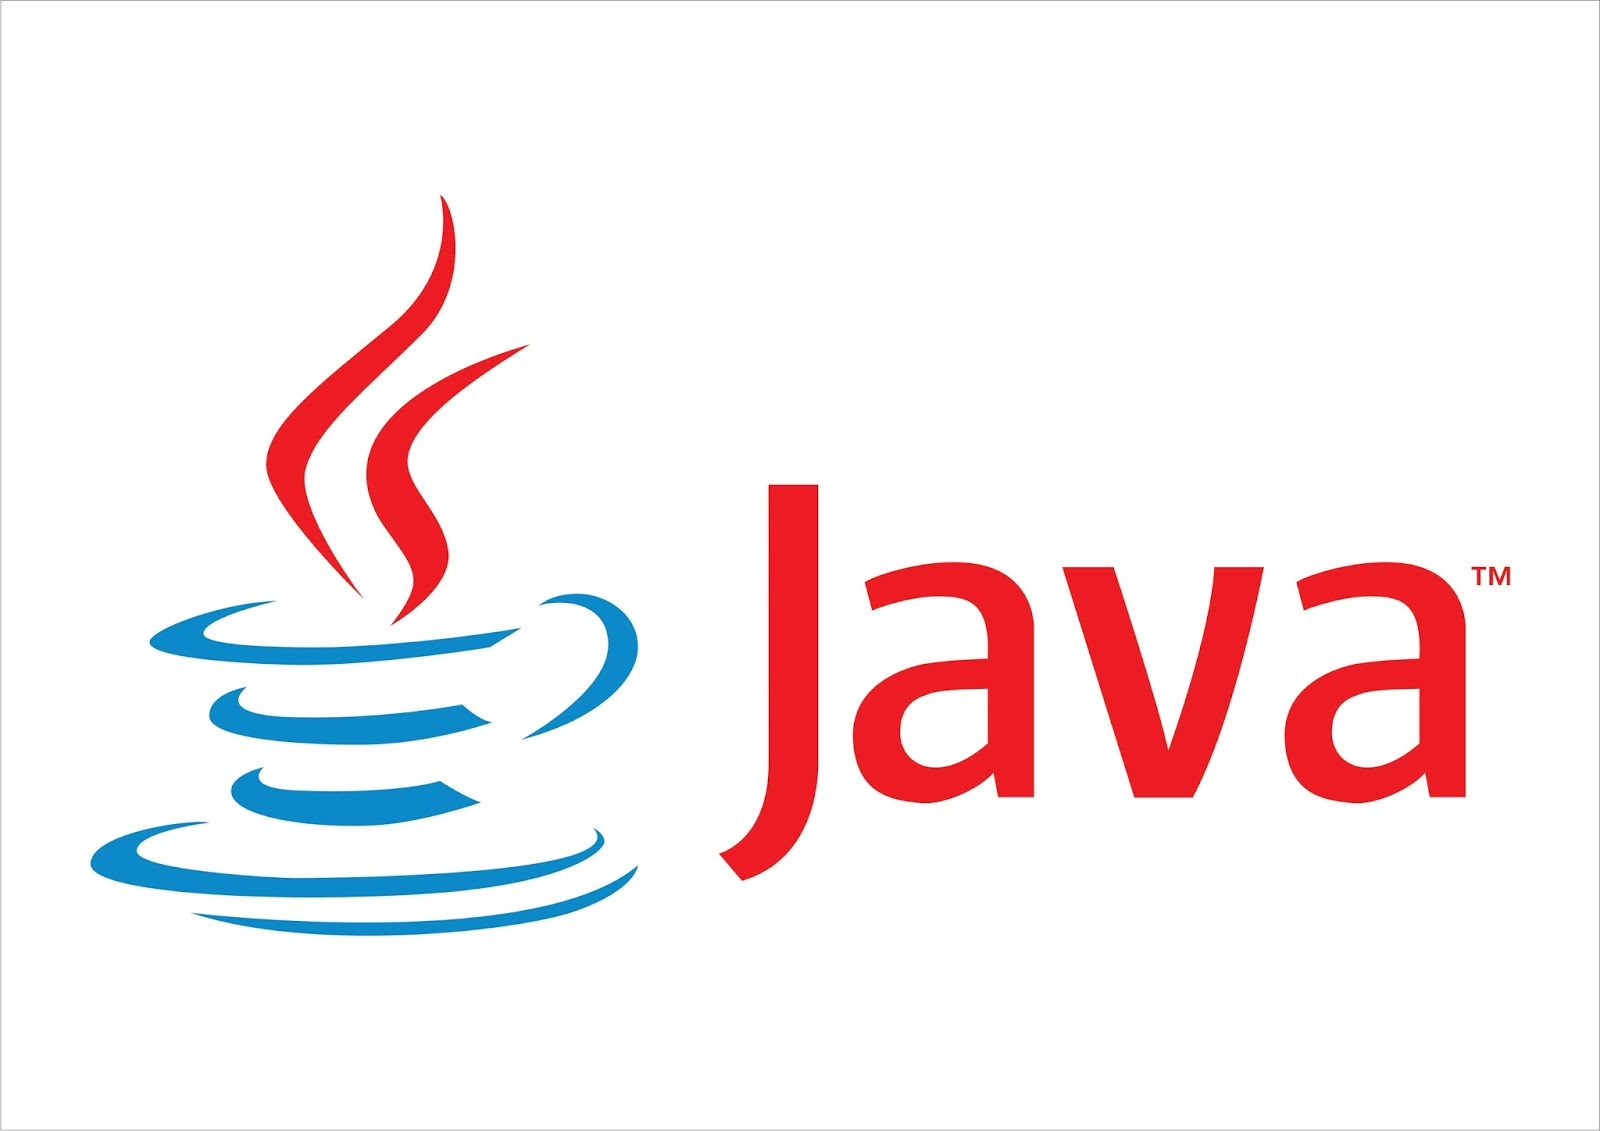 5 Best Core Java Books - Dedsec Hacking Club